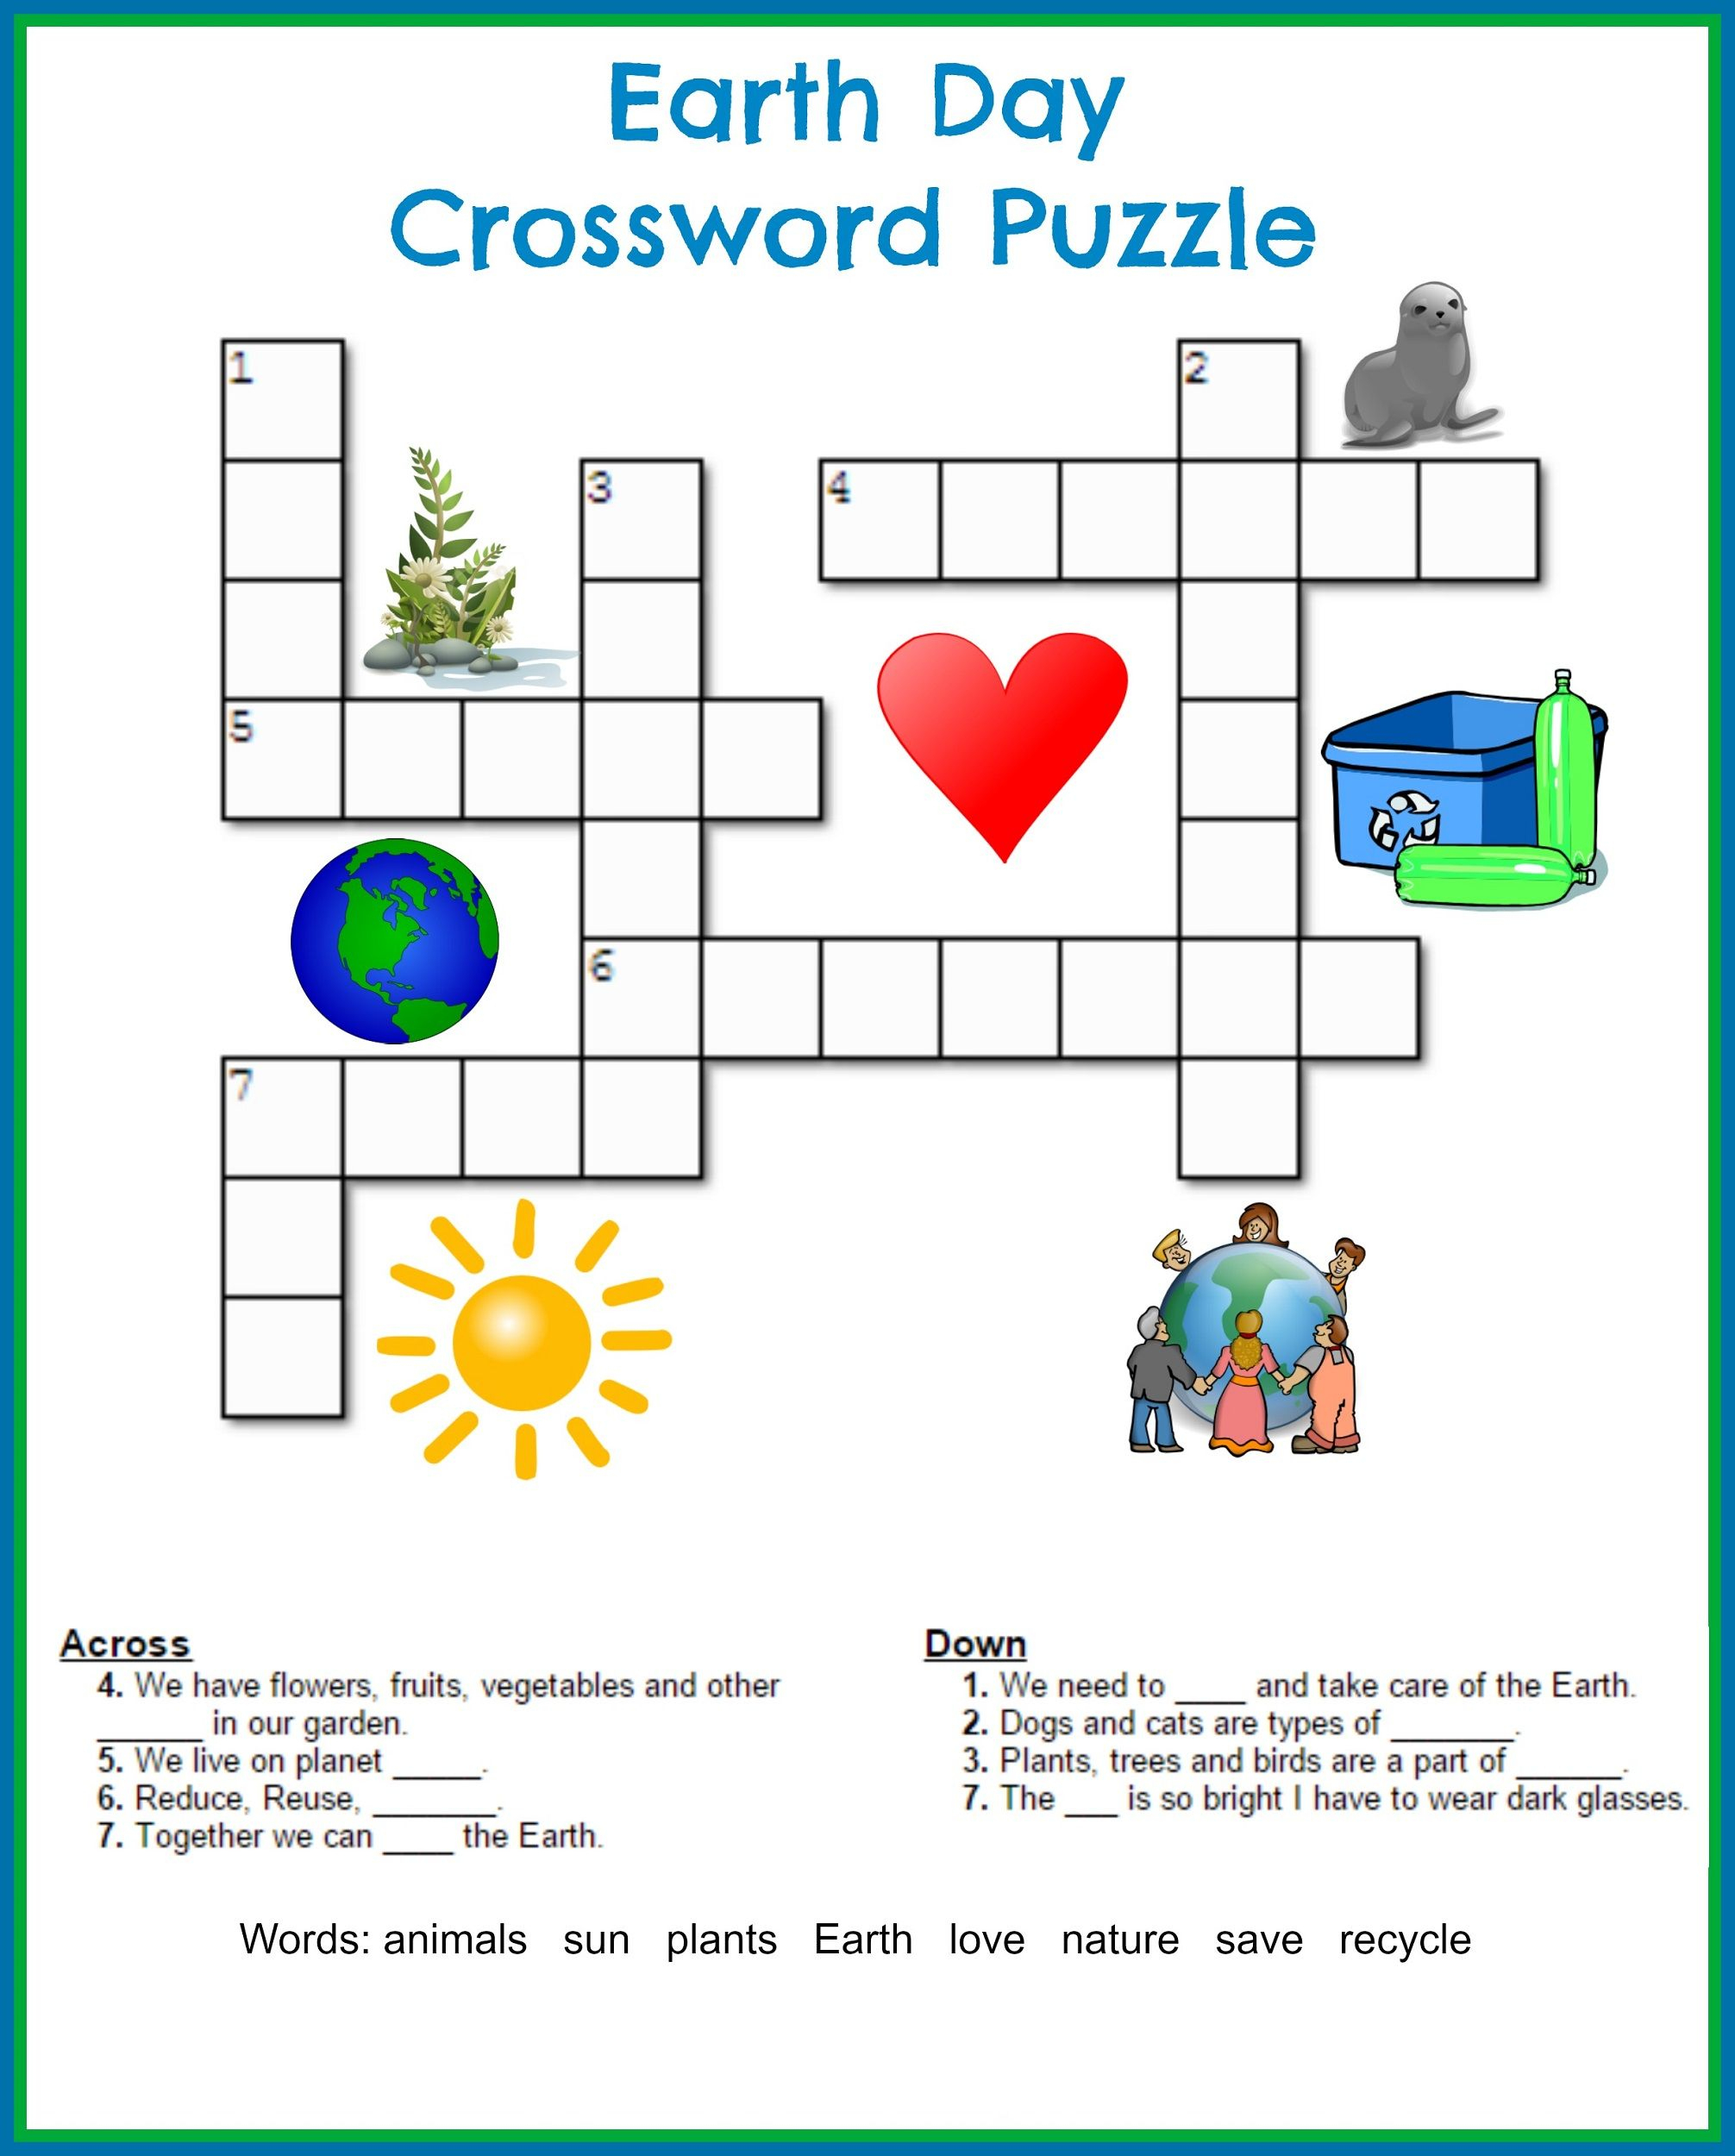 Printable Crossword Puzzles Kids | Crossword Puzzles On Earth - Printable Elementary Crossword Puzzles